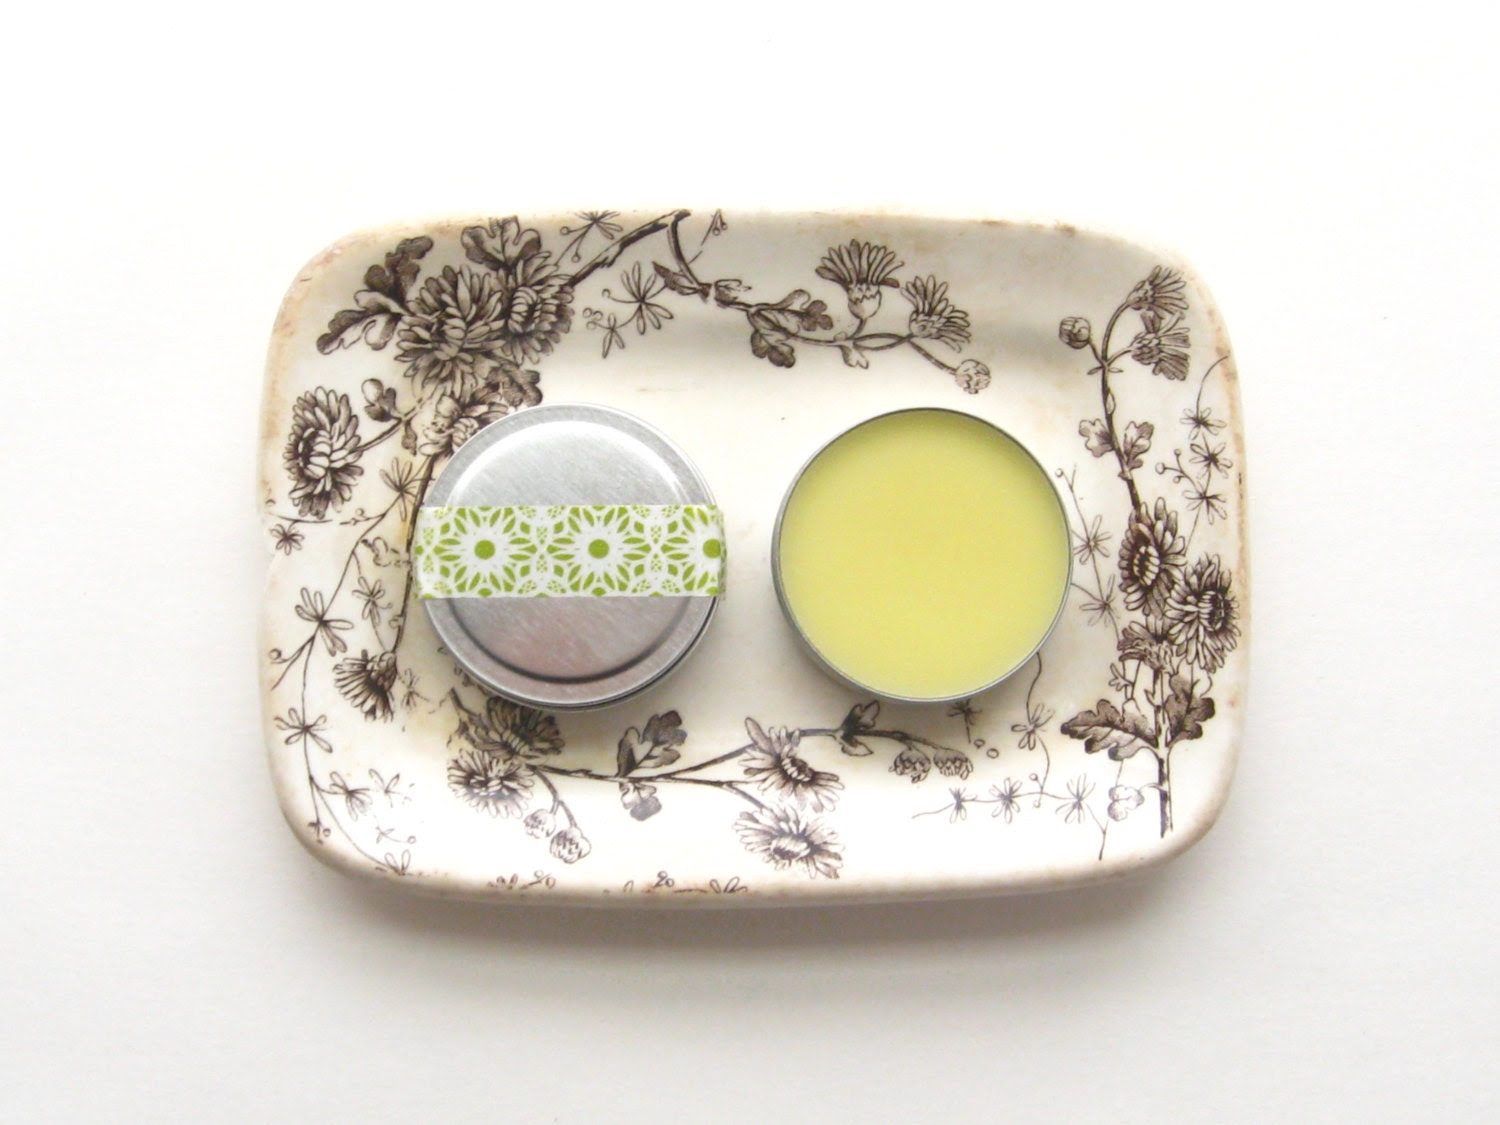 Foot Butter Rosemary Lavender Tea Tree // Organic Foot Hand Salve Moisturizer Green Rustic Natural Beeswax Olive Oil Spring